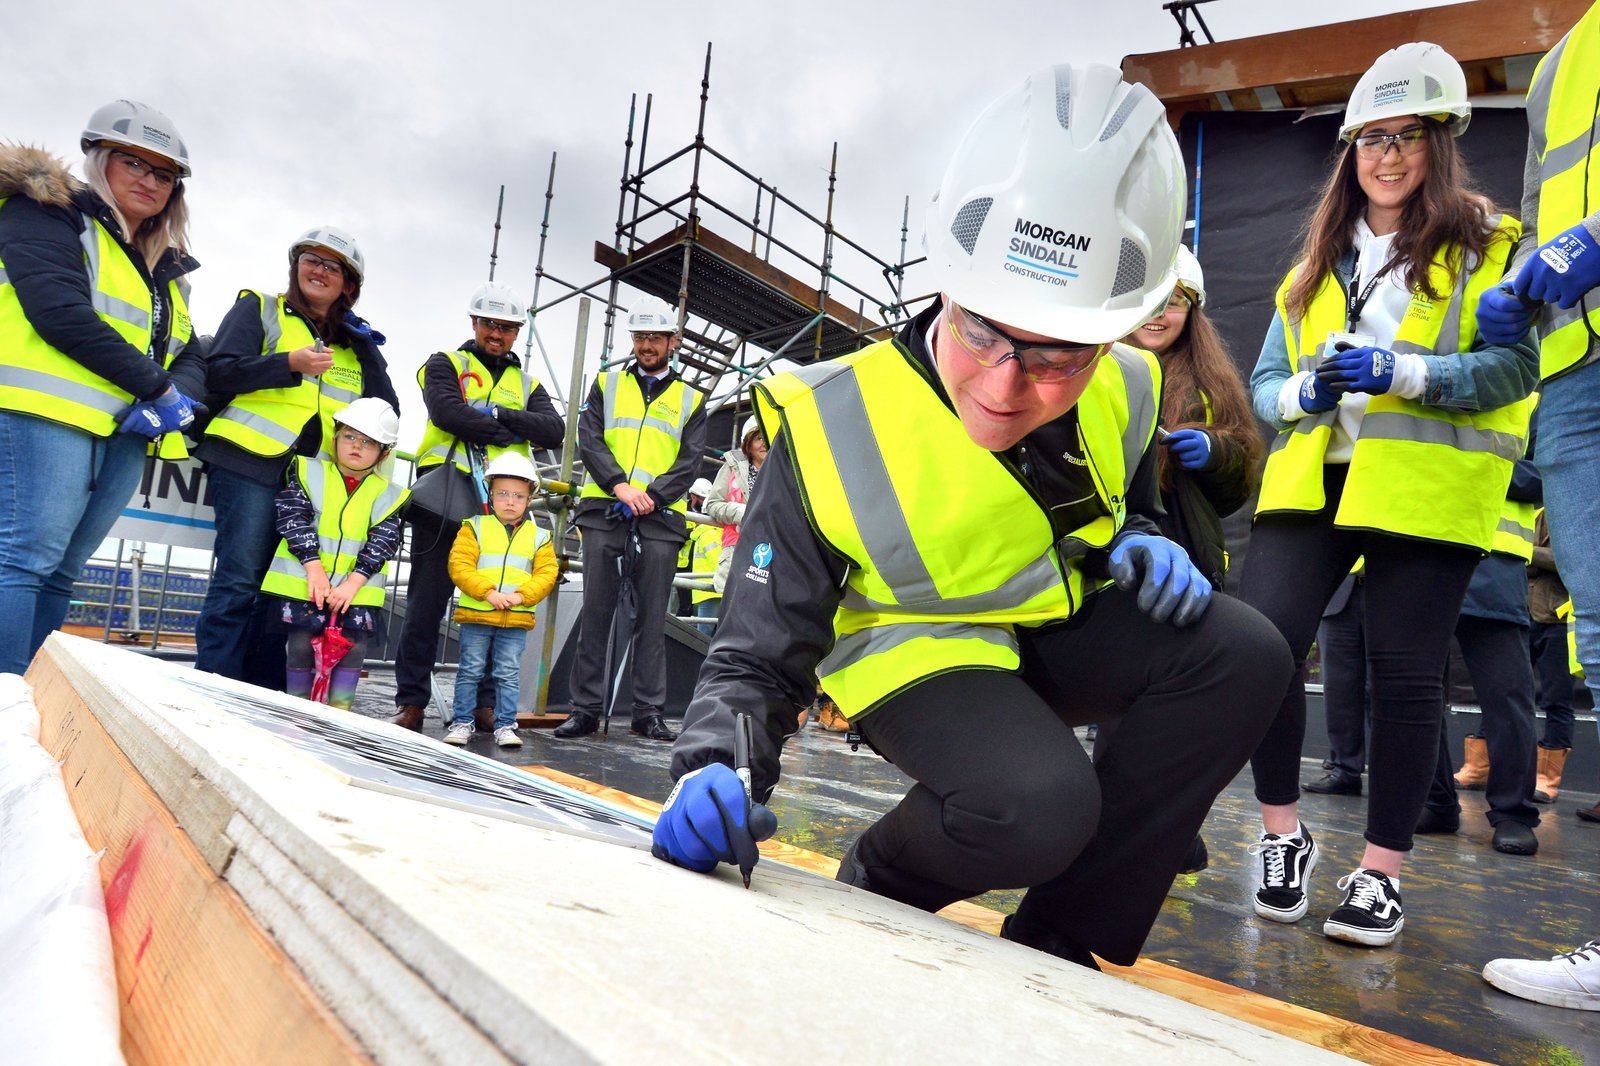 Morgan Sindall Construction topping out ceremony at Hailsham School